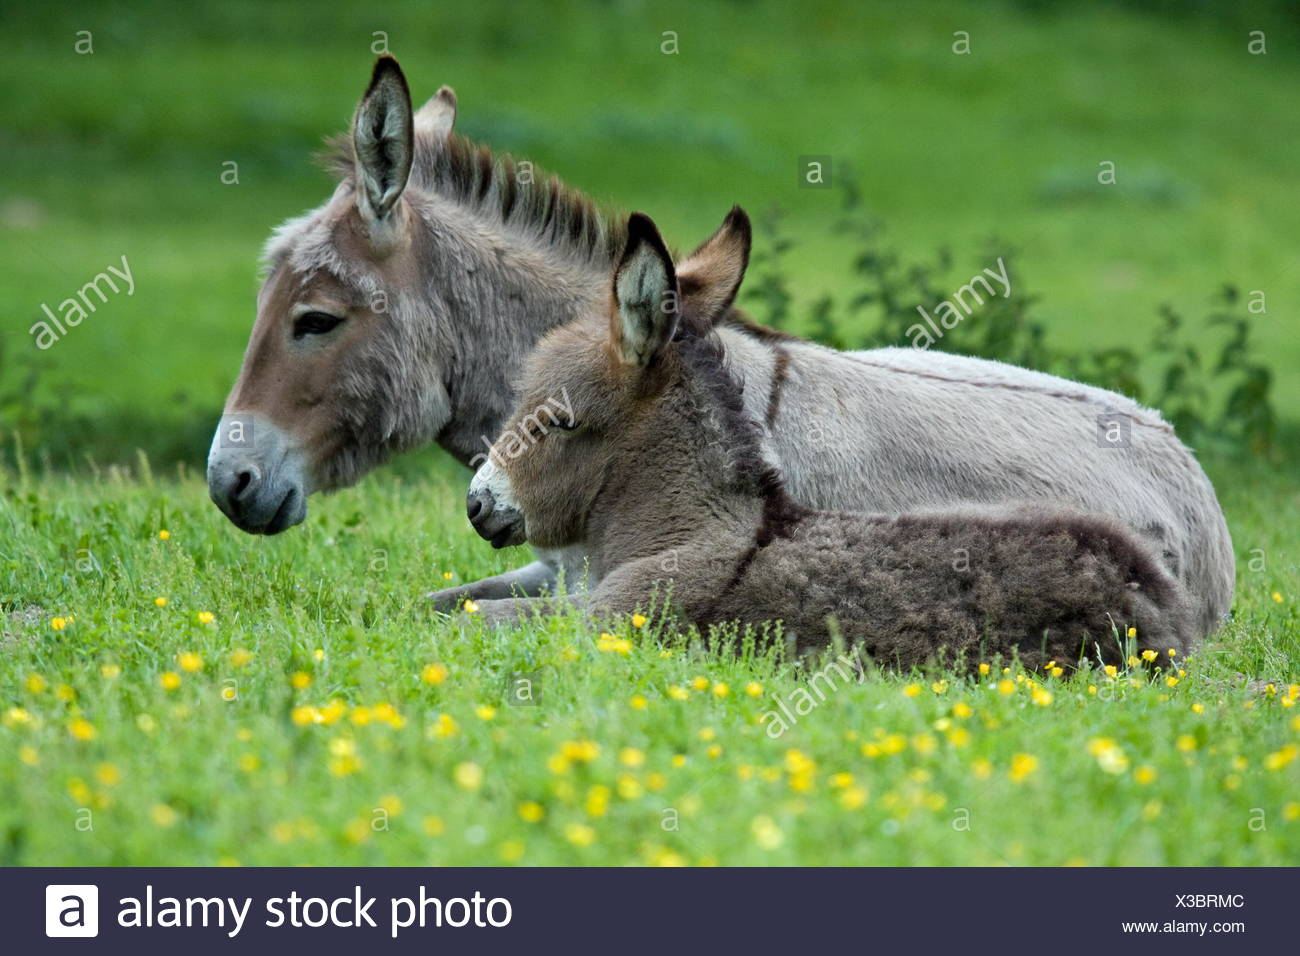 donkey young - Stock Image